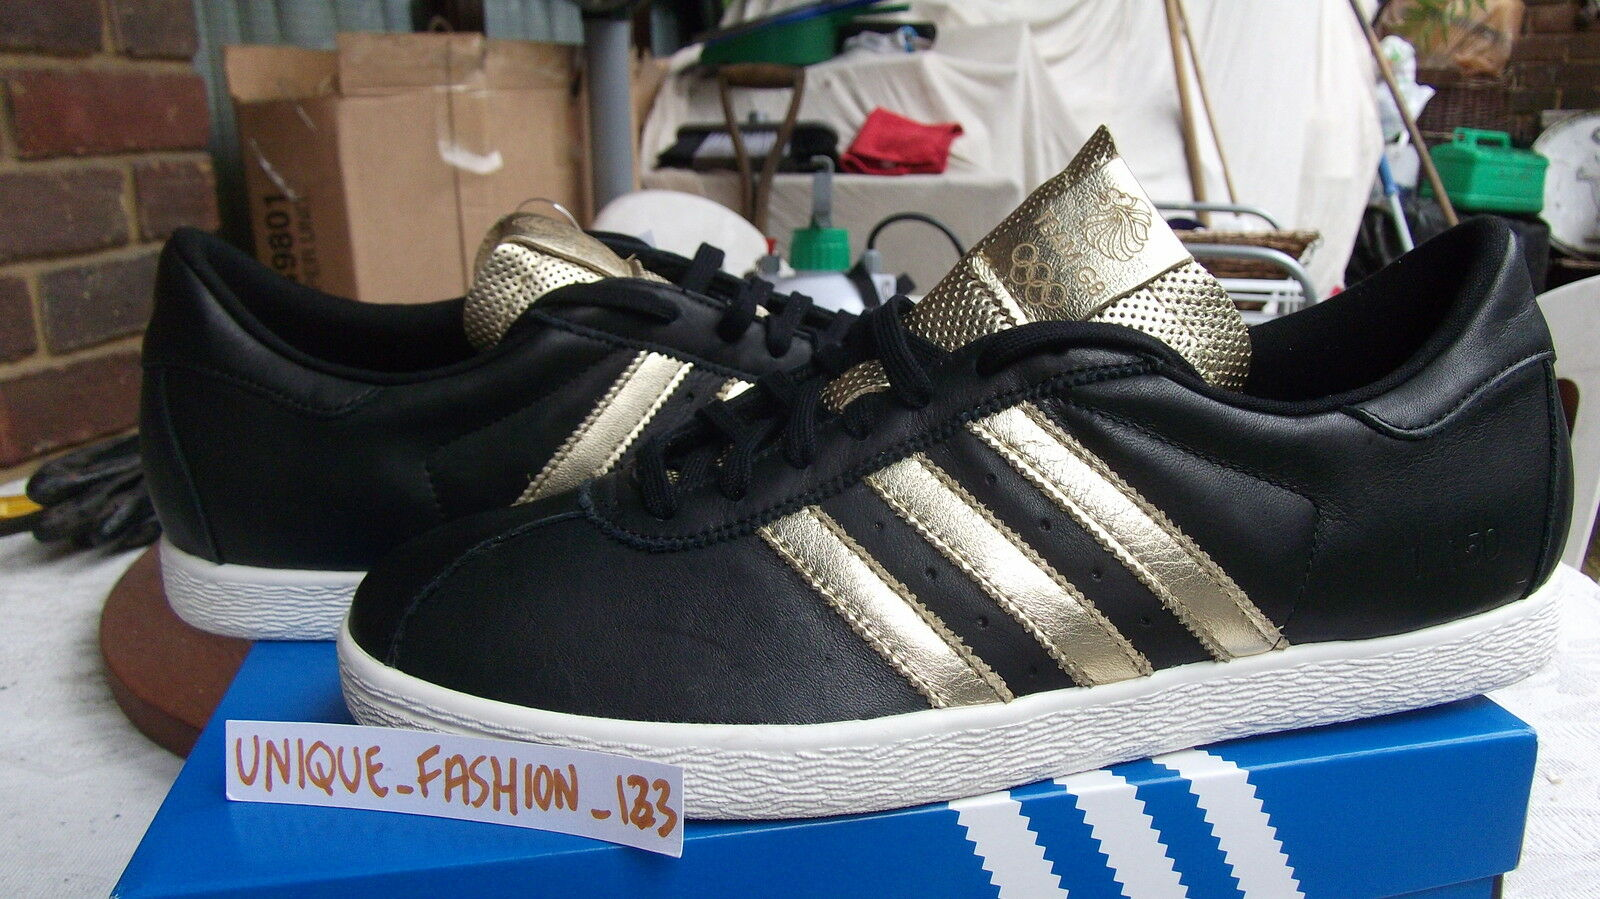 adidas tobacco team gb london london london 2012 olympic 1 / 150 couples nous 6,5 e 39 1 / 3 noel 40e9a9